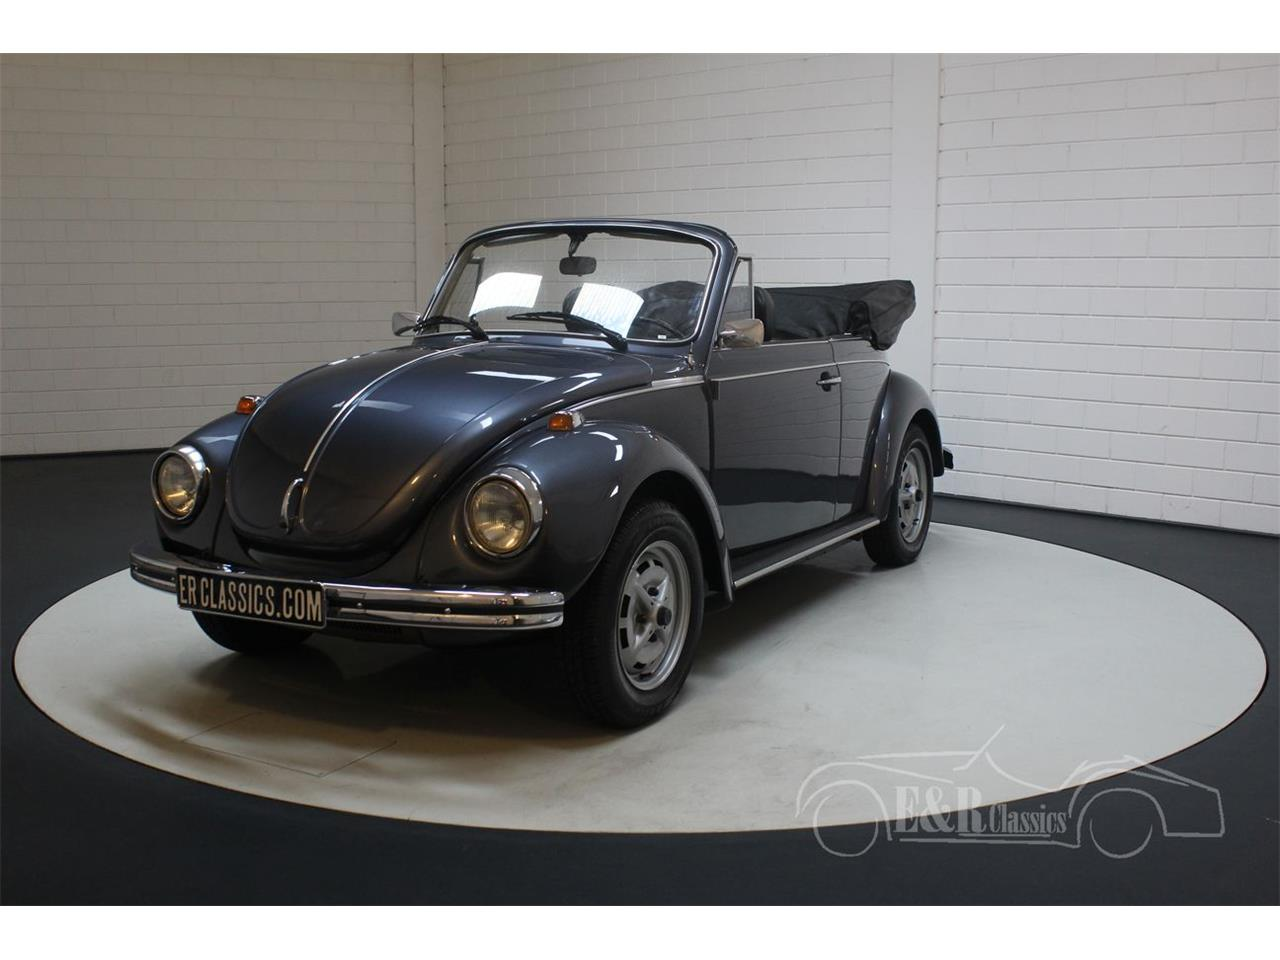 Large Picture of 1974 Volkswagen Beetle located in Waalwijk Noord-Brabant - $27,950.00 Offered by E & R Classics - QC3W